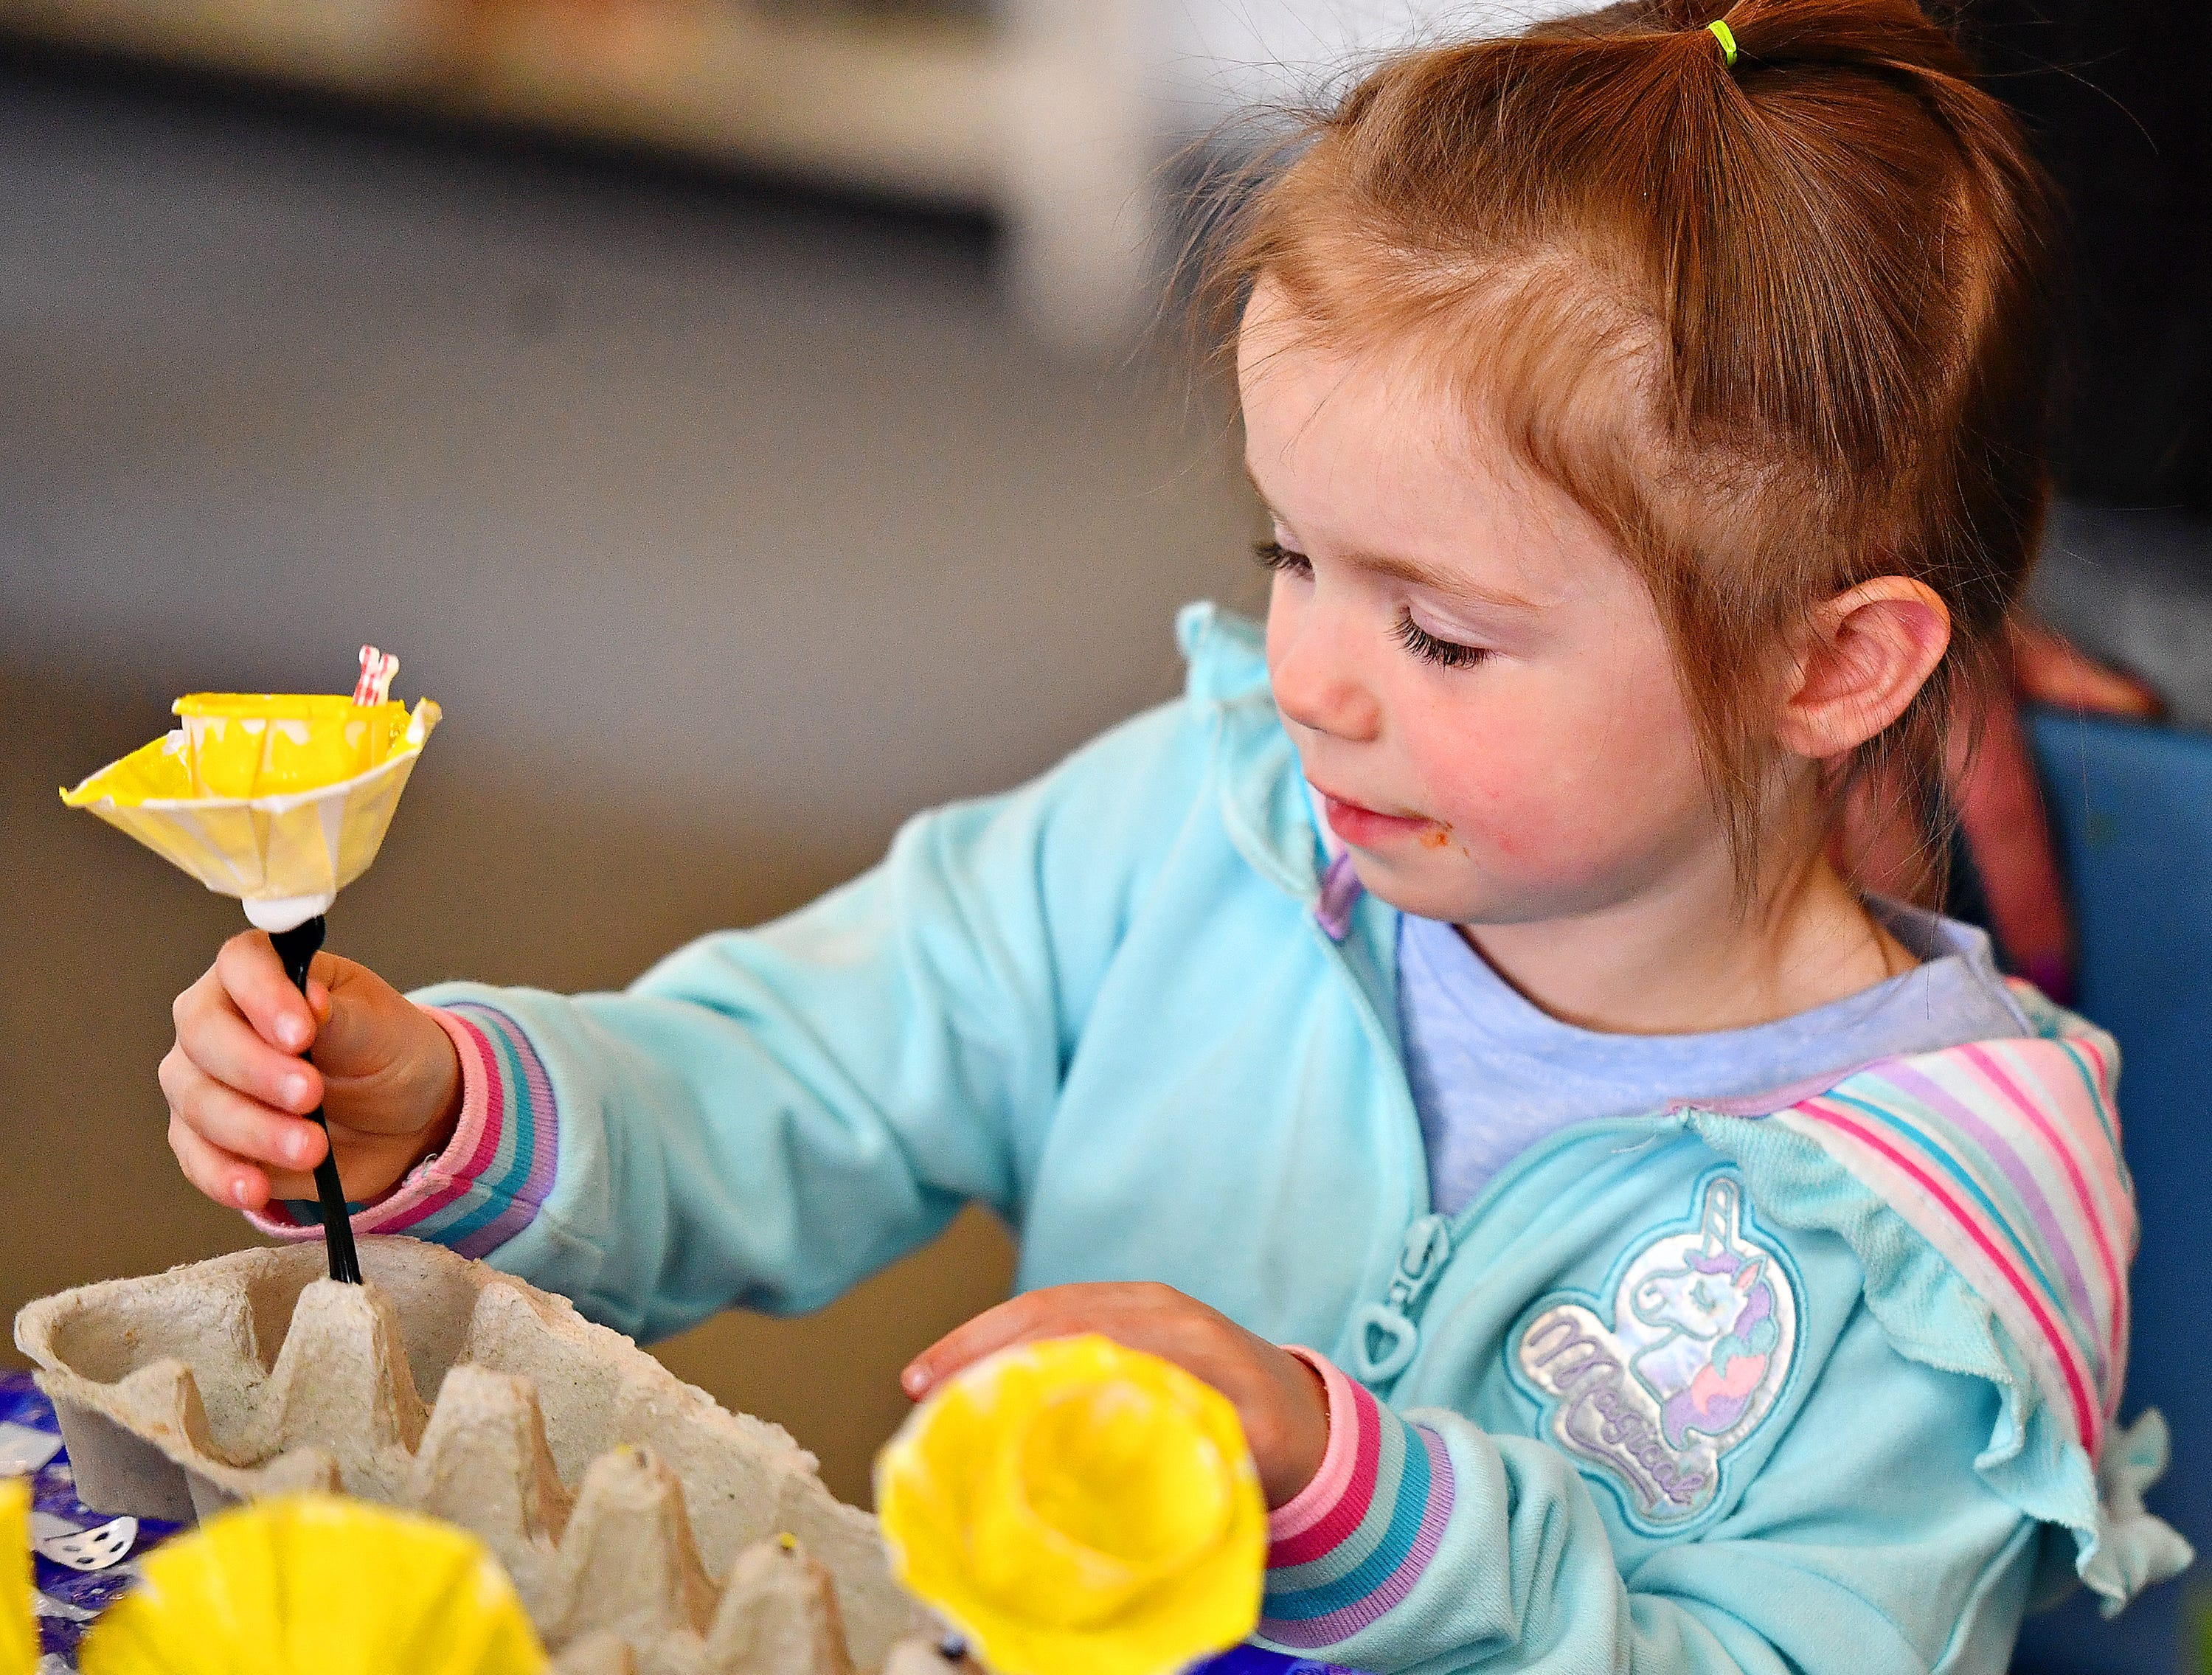 Nevaeh Bortner Waltz, 4, places a freshly-painted daffodil into a holder during the Glatfelter Memorial Library's Annual Read-a-thon event in Spring Grove, Saturday, April 6, 2019. Dawn J. Sagert photo